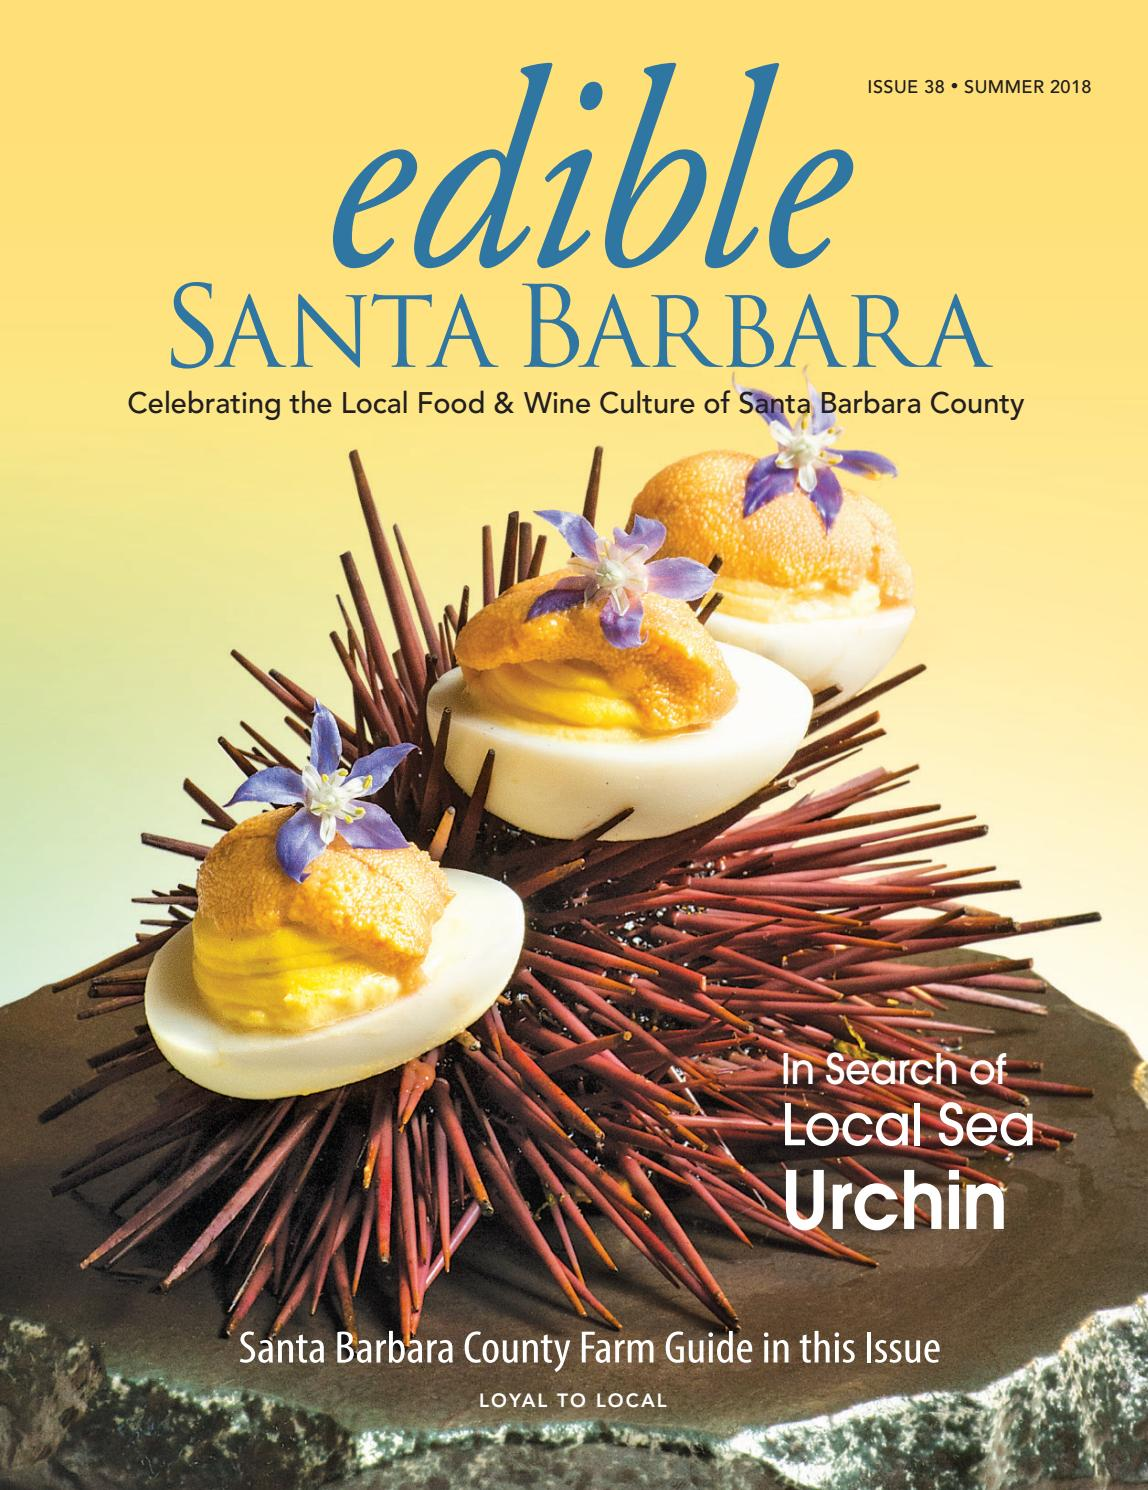 Edible Santa Barbara Summer 2018 By Issuu Eco Tools 1332 Glow For It